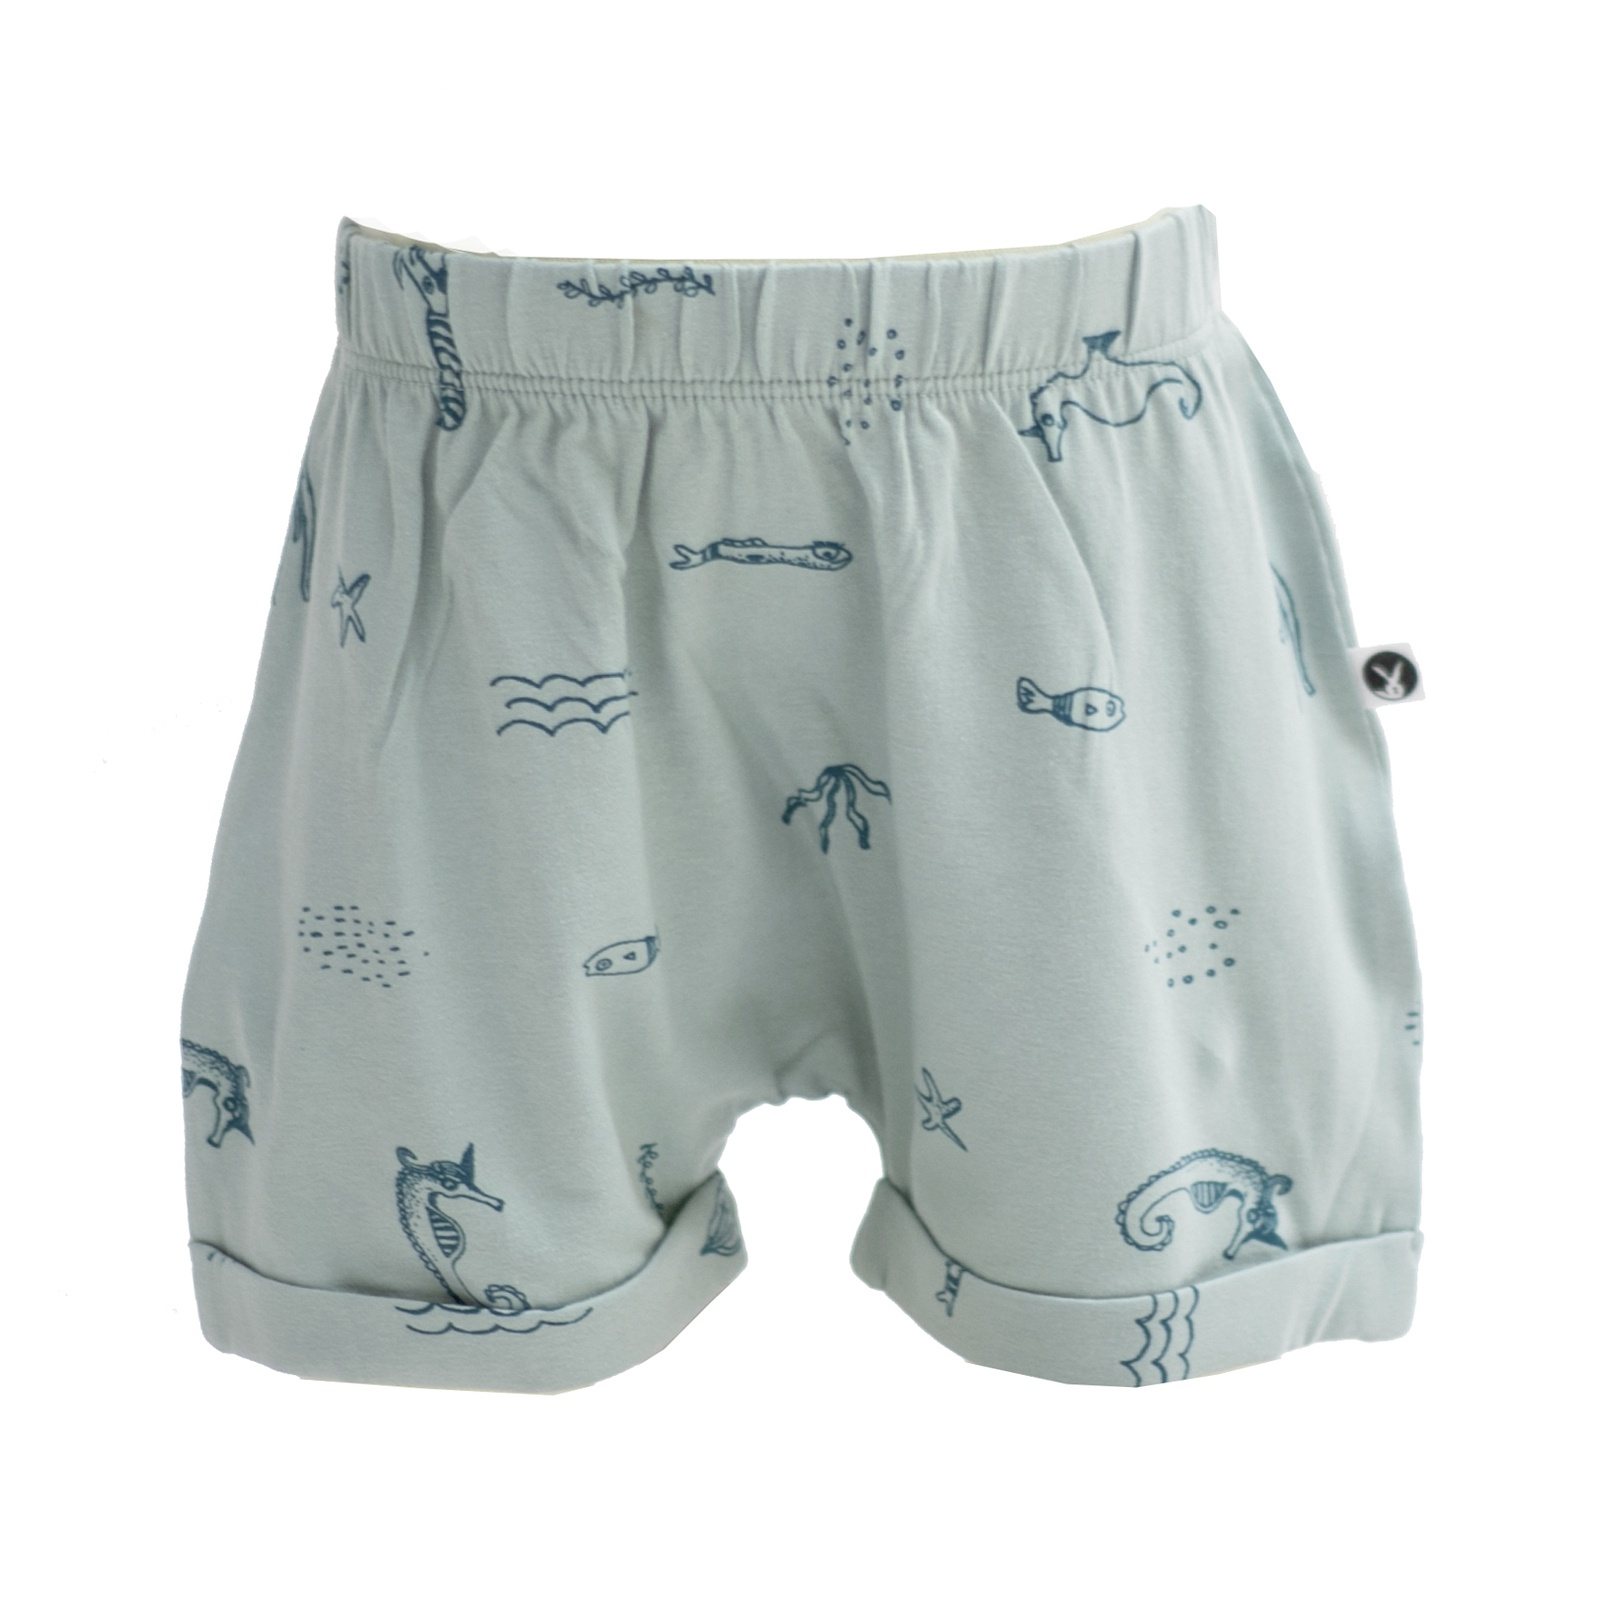 UNDER THE SEA CLASSIC SHORTS